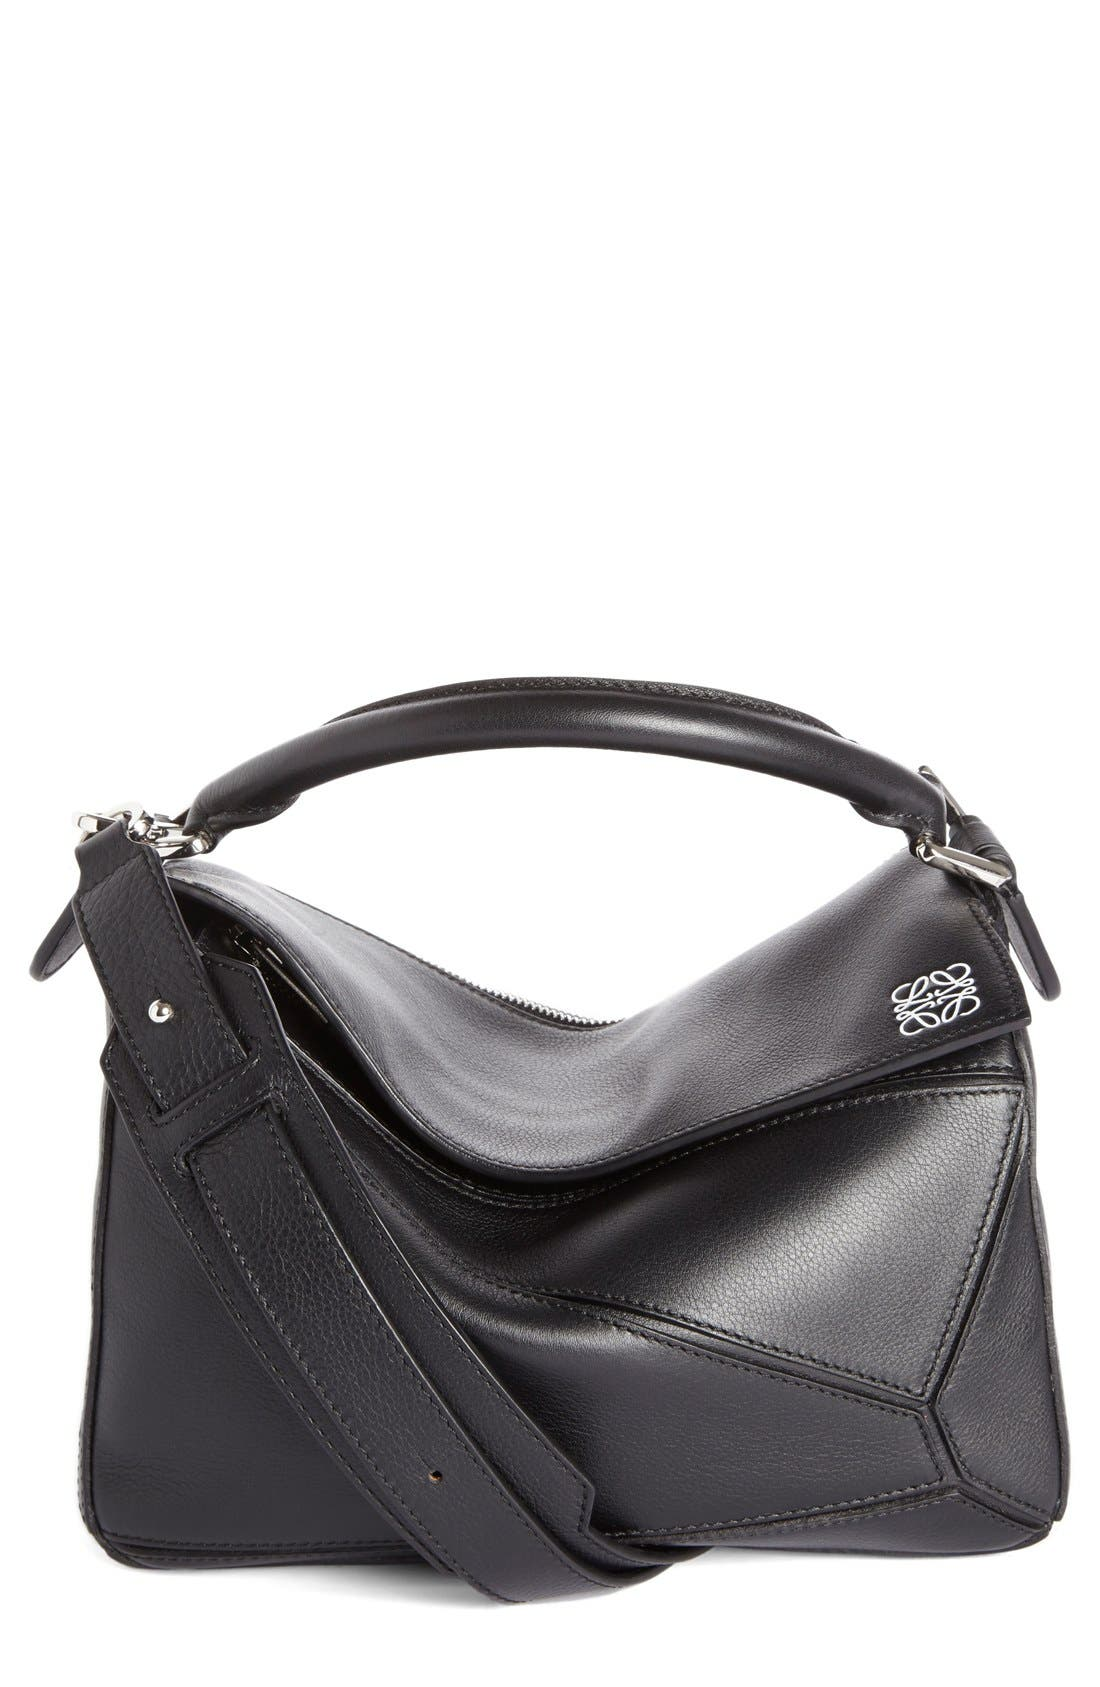 'Small Puzzle' Calfskin Leather Bag,                             Main thumbnail 1, color,                             001